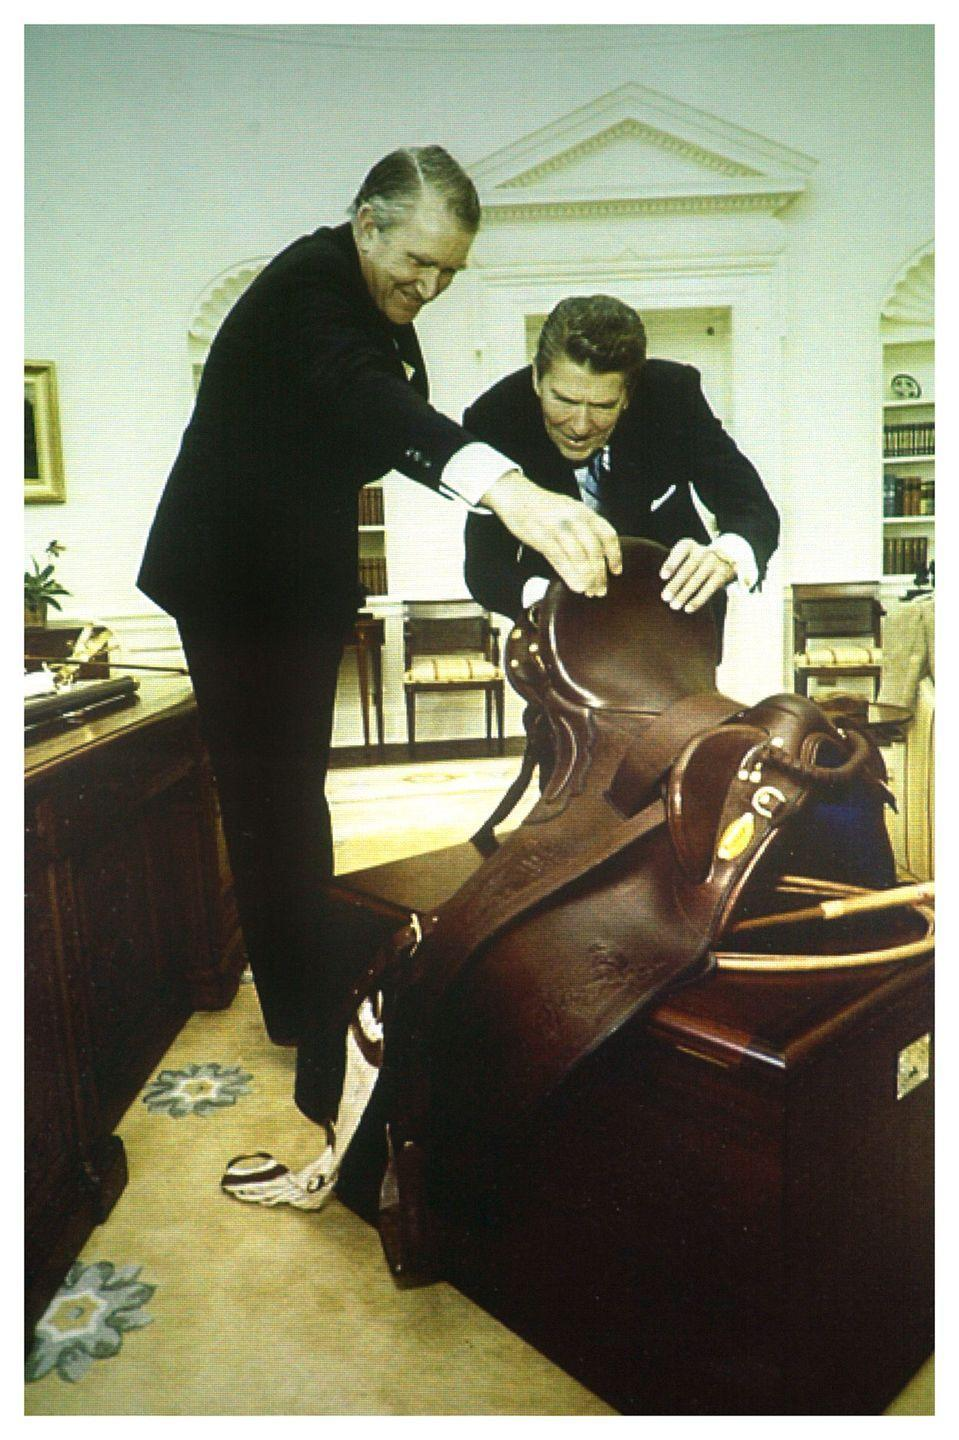 "<p>Ronald Reagan received <a href=""http://mentalfloss.com/article/22413/white-house-gift-guide-13-unique-presidential-gifts"" rel=""nofollow noopener"" target=""_blank"" data-ylk=""slk:several saddles"" class=""link rapid-noclick-resp"">several saddles</a> while in office, but the most ornate one was gifted to him by the president of Algeria in 1985. </p>"